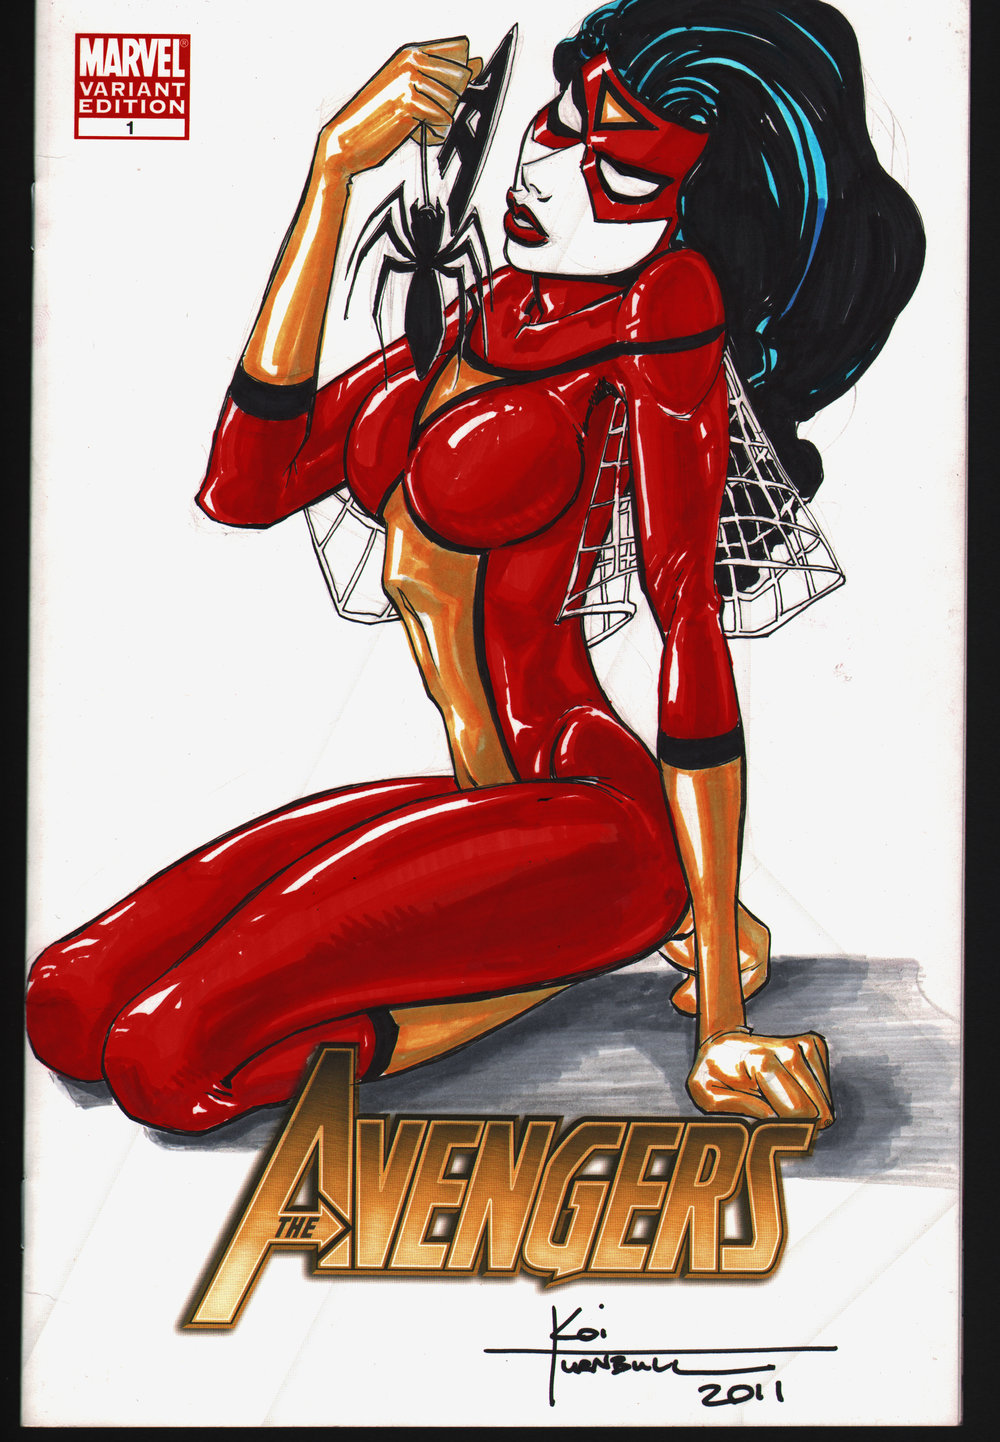 SpiderWoman cover of The Avengers # 1 a.jpg